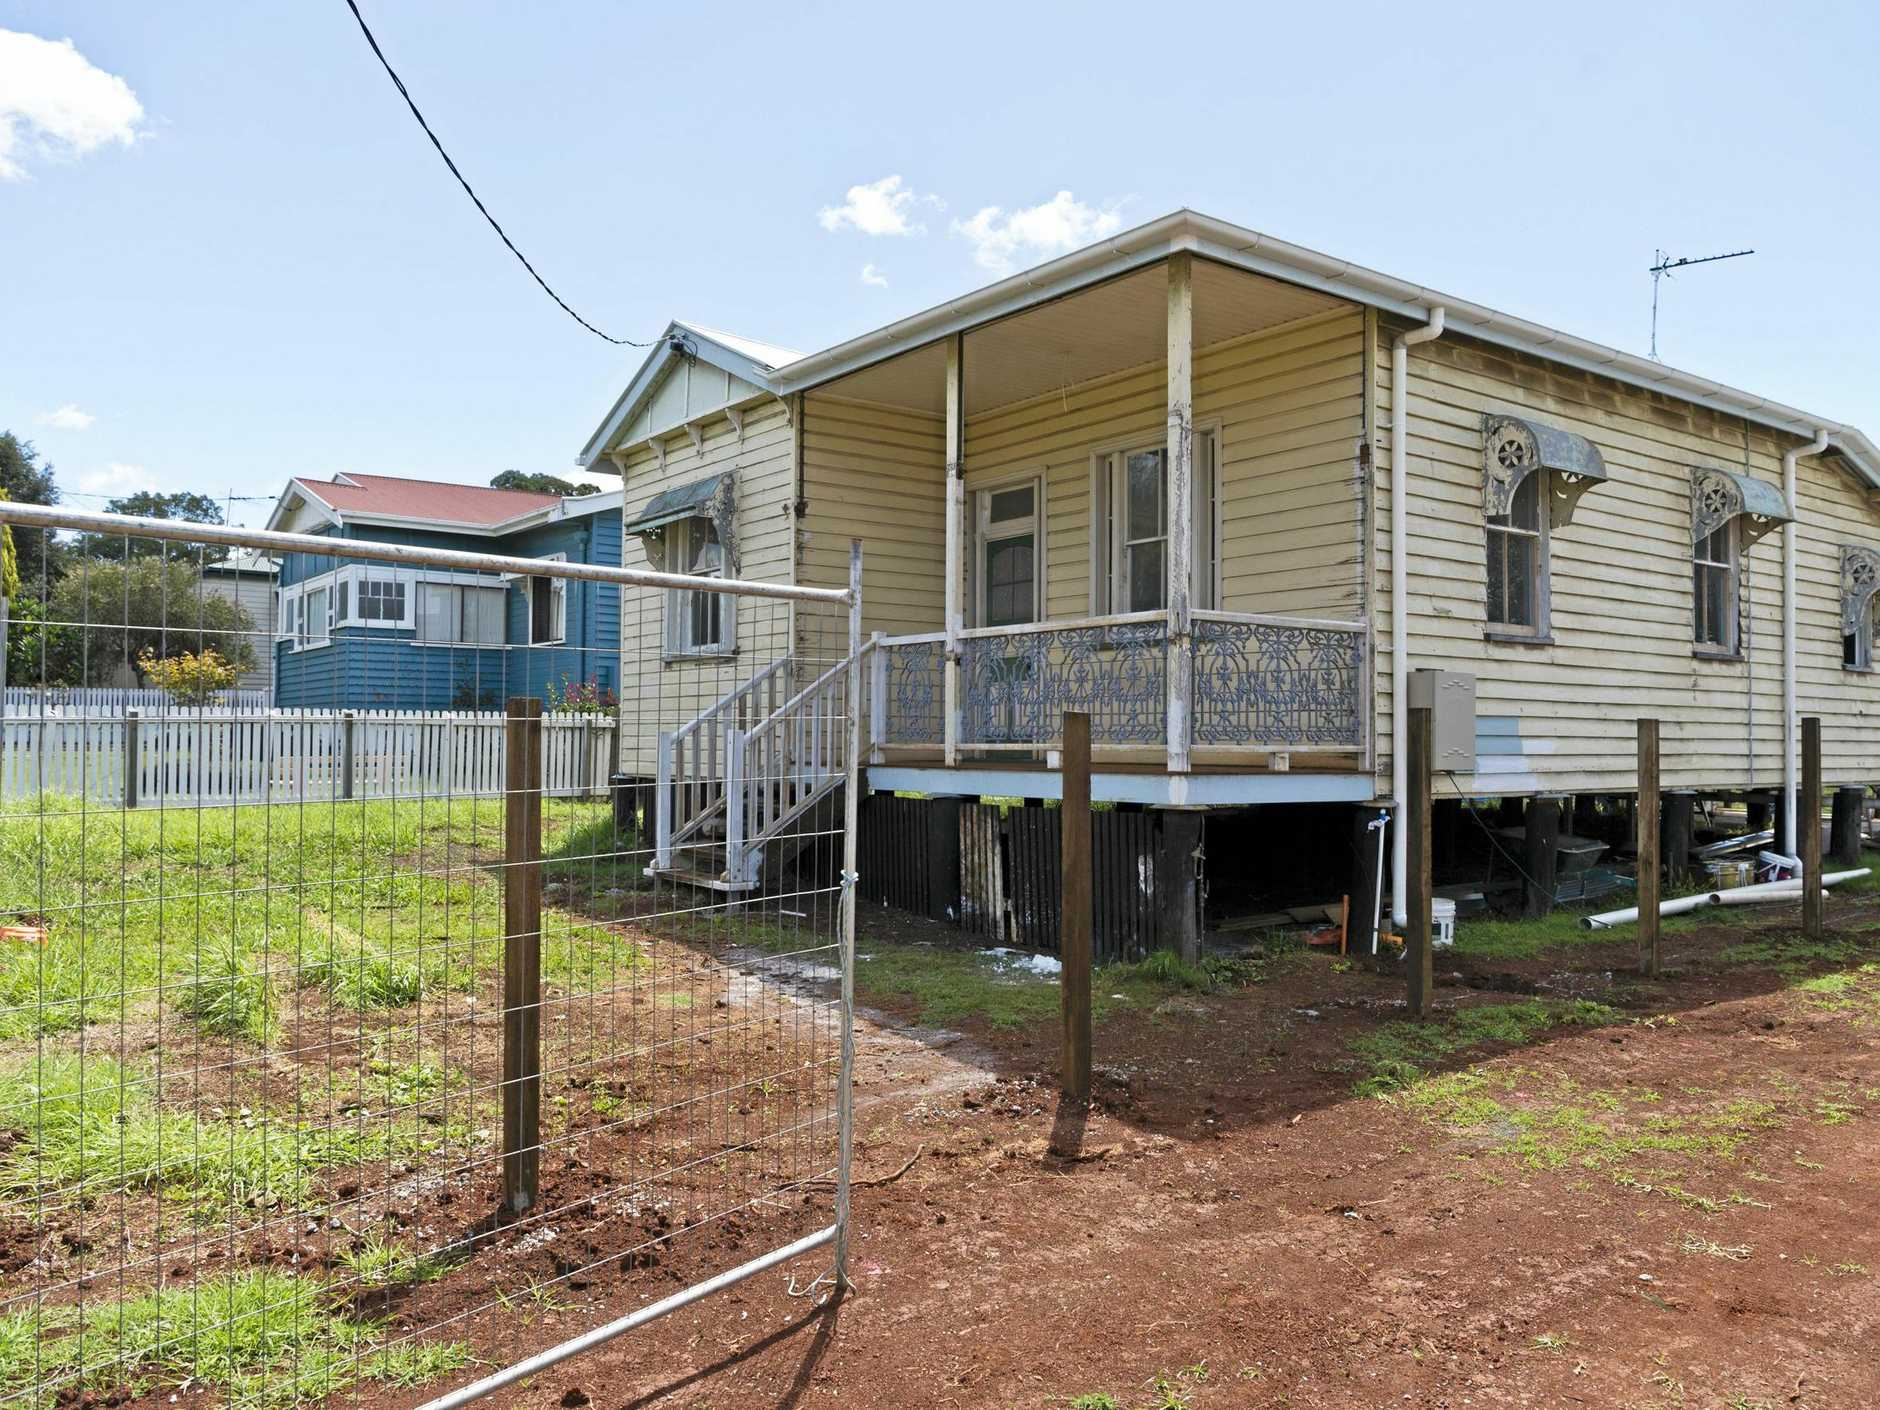 Jasmine Riddle is a renovator who has fixed up several homes in the Toowoomba suburb of Newtown, Monday, March 12, 2018.